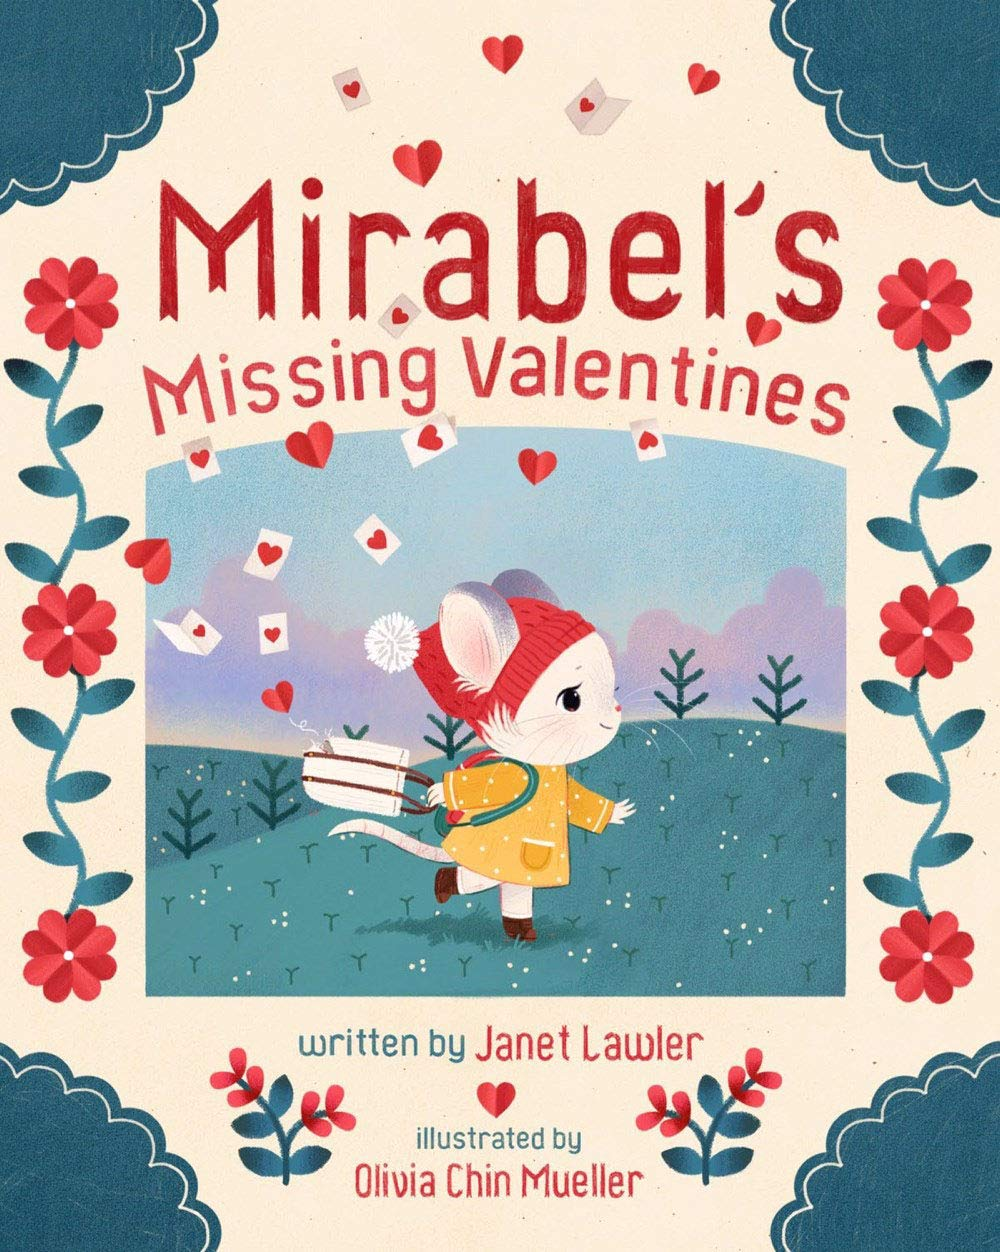 Mirabel's Missing Valentines, Valentine's Day Books for Kids